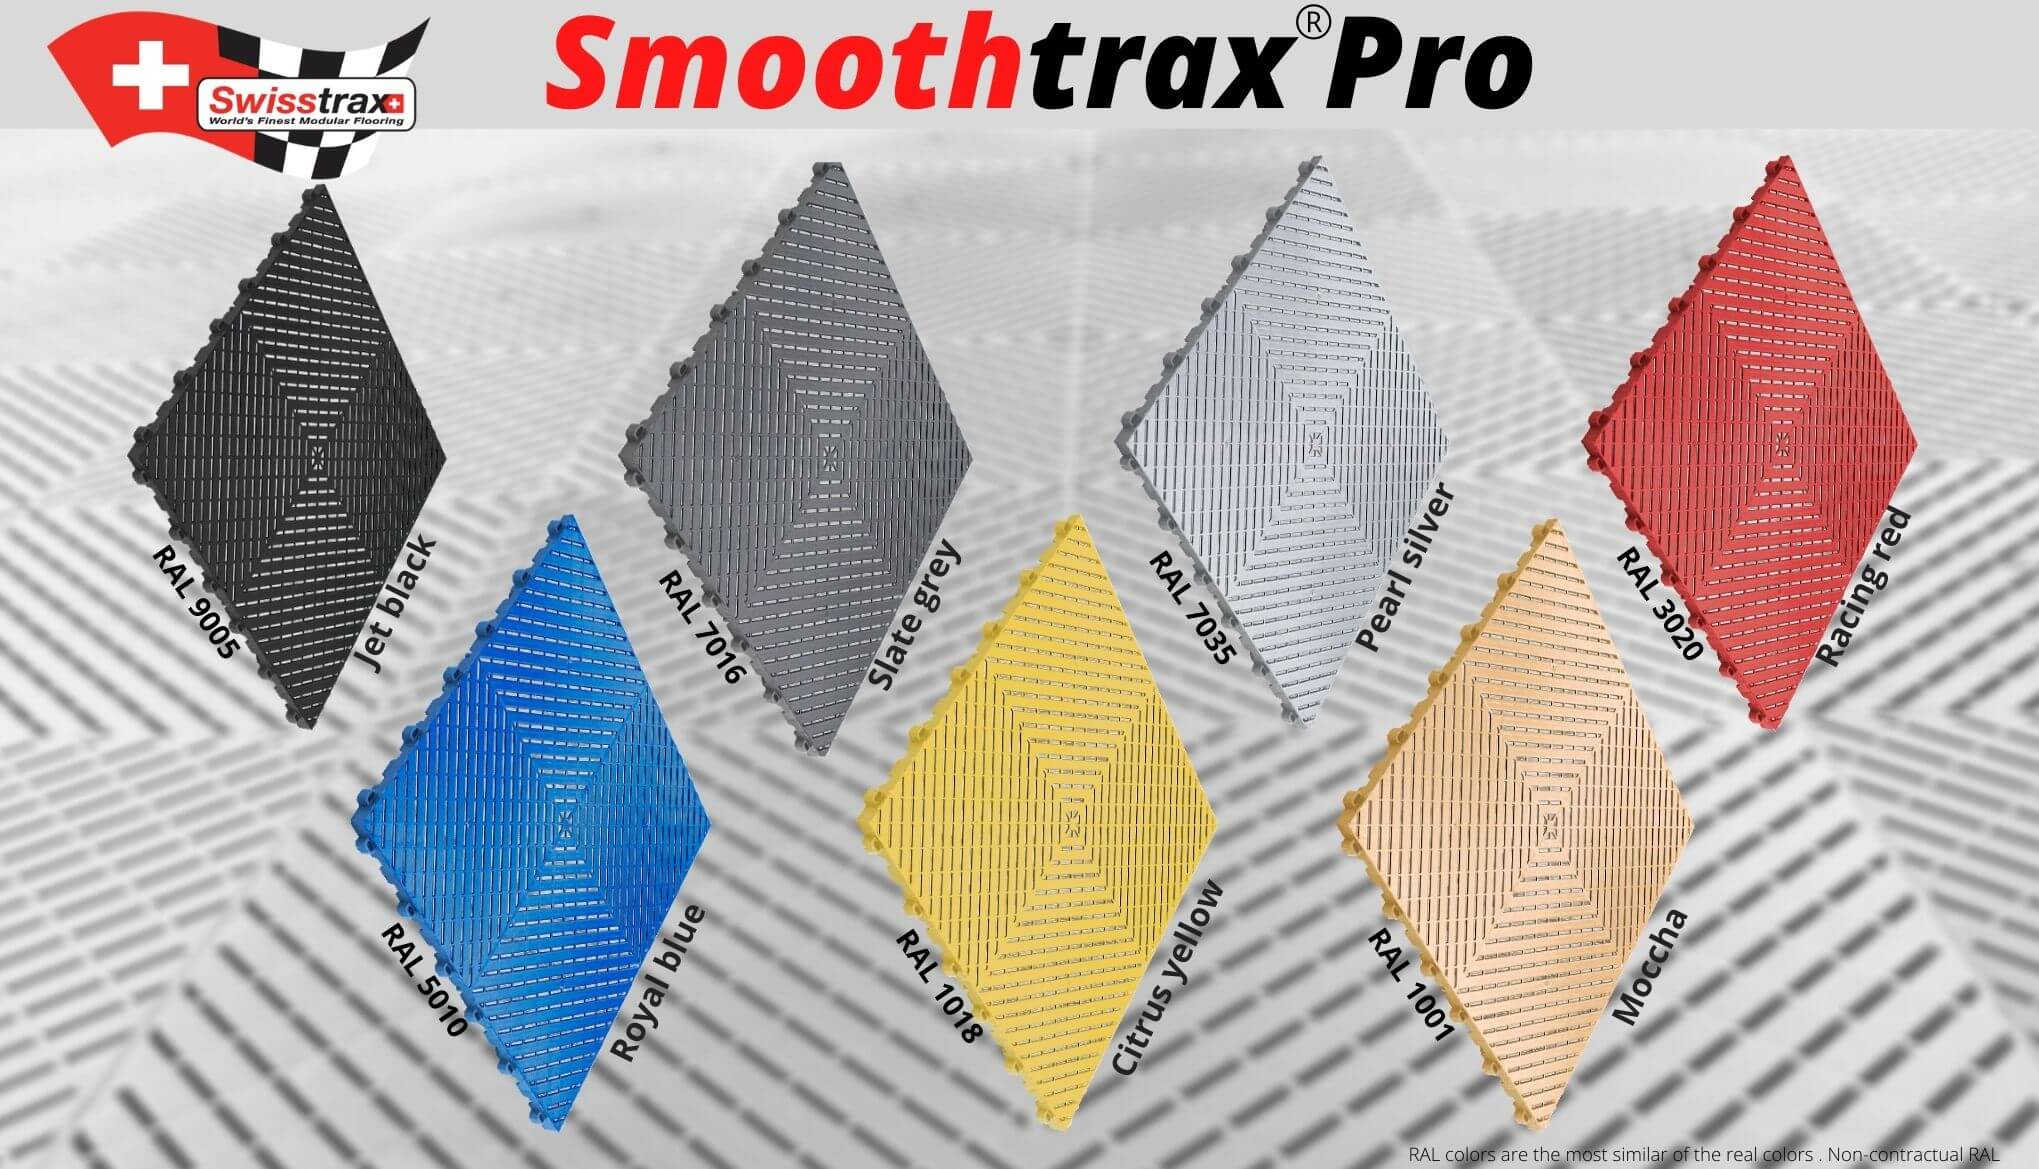 smoothtrax pro colors